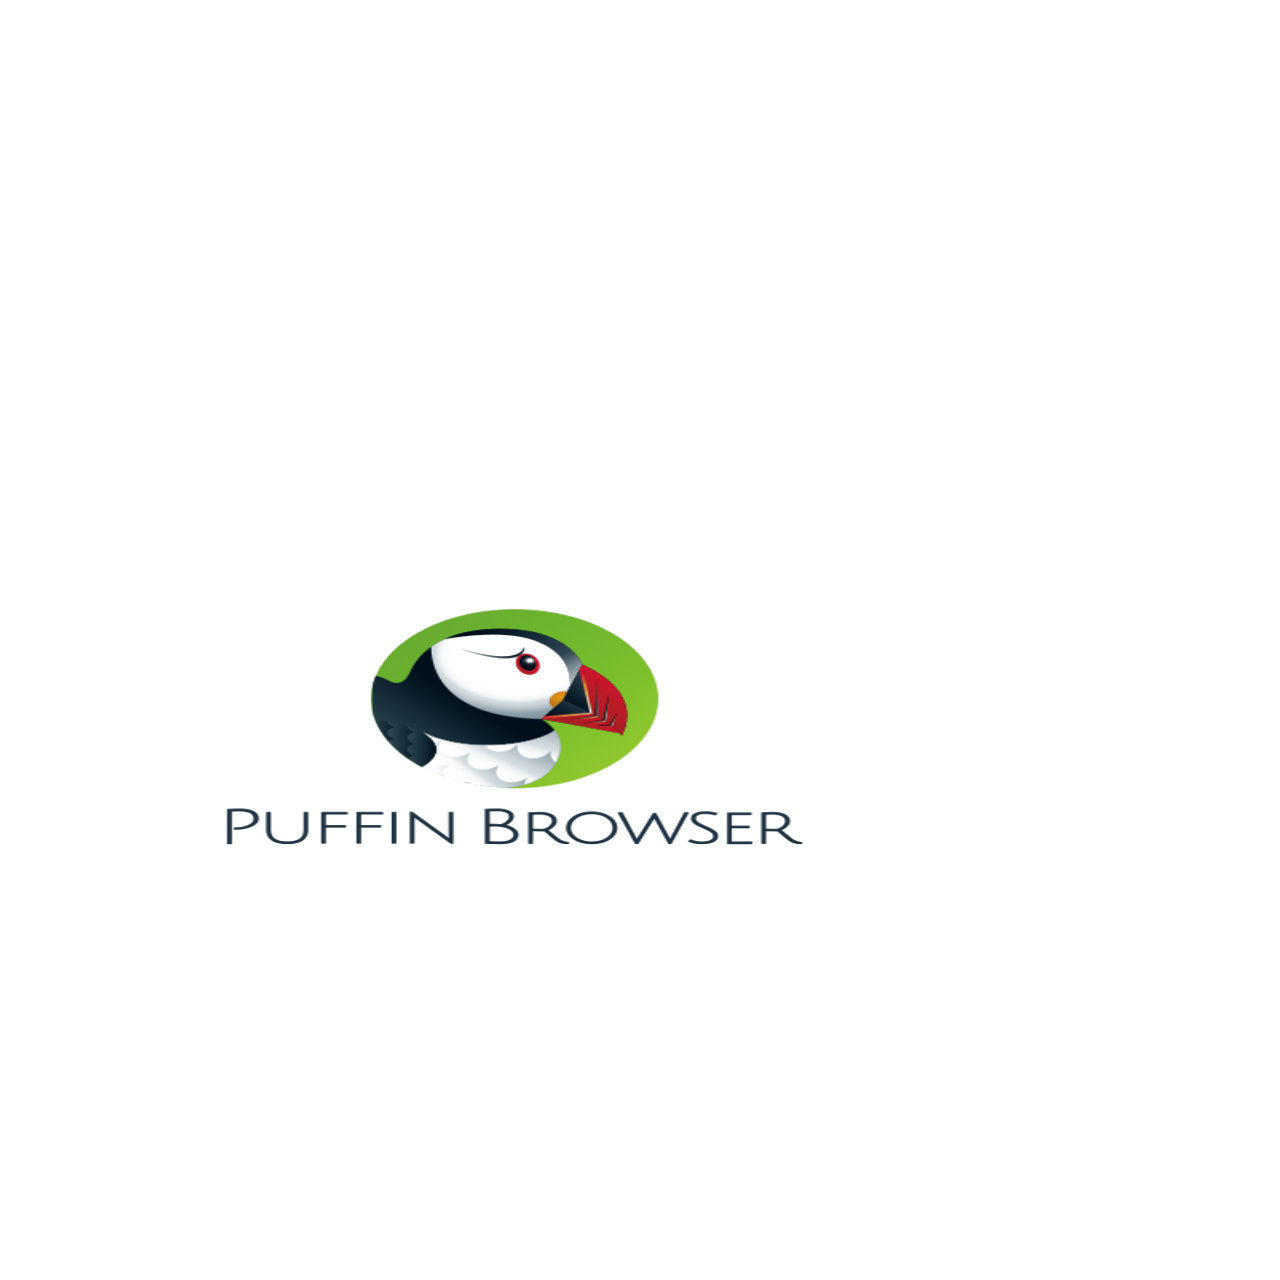 What is puffin browser - Technotech11